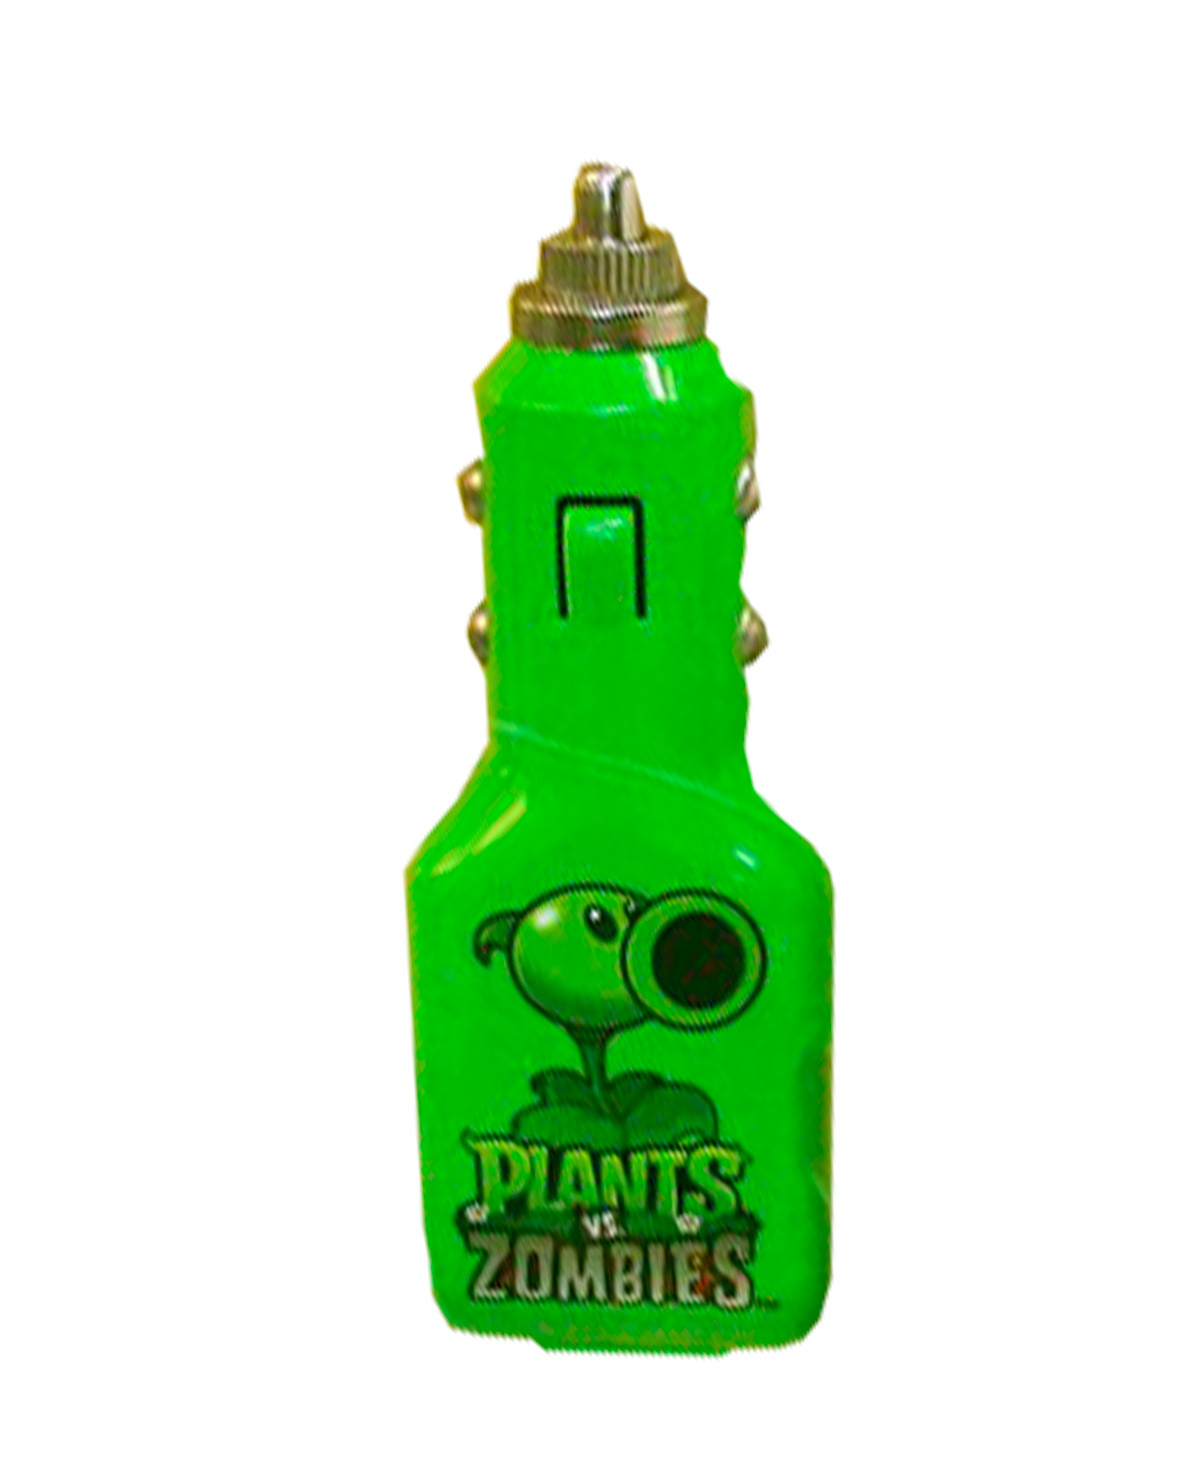 PLANTS VS ZOMBIES UNIVERSAL CAR CHARGER Para PRO